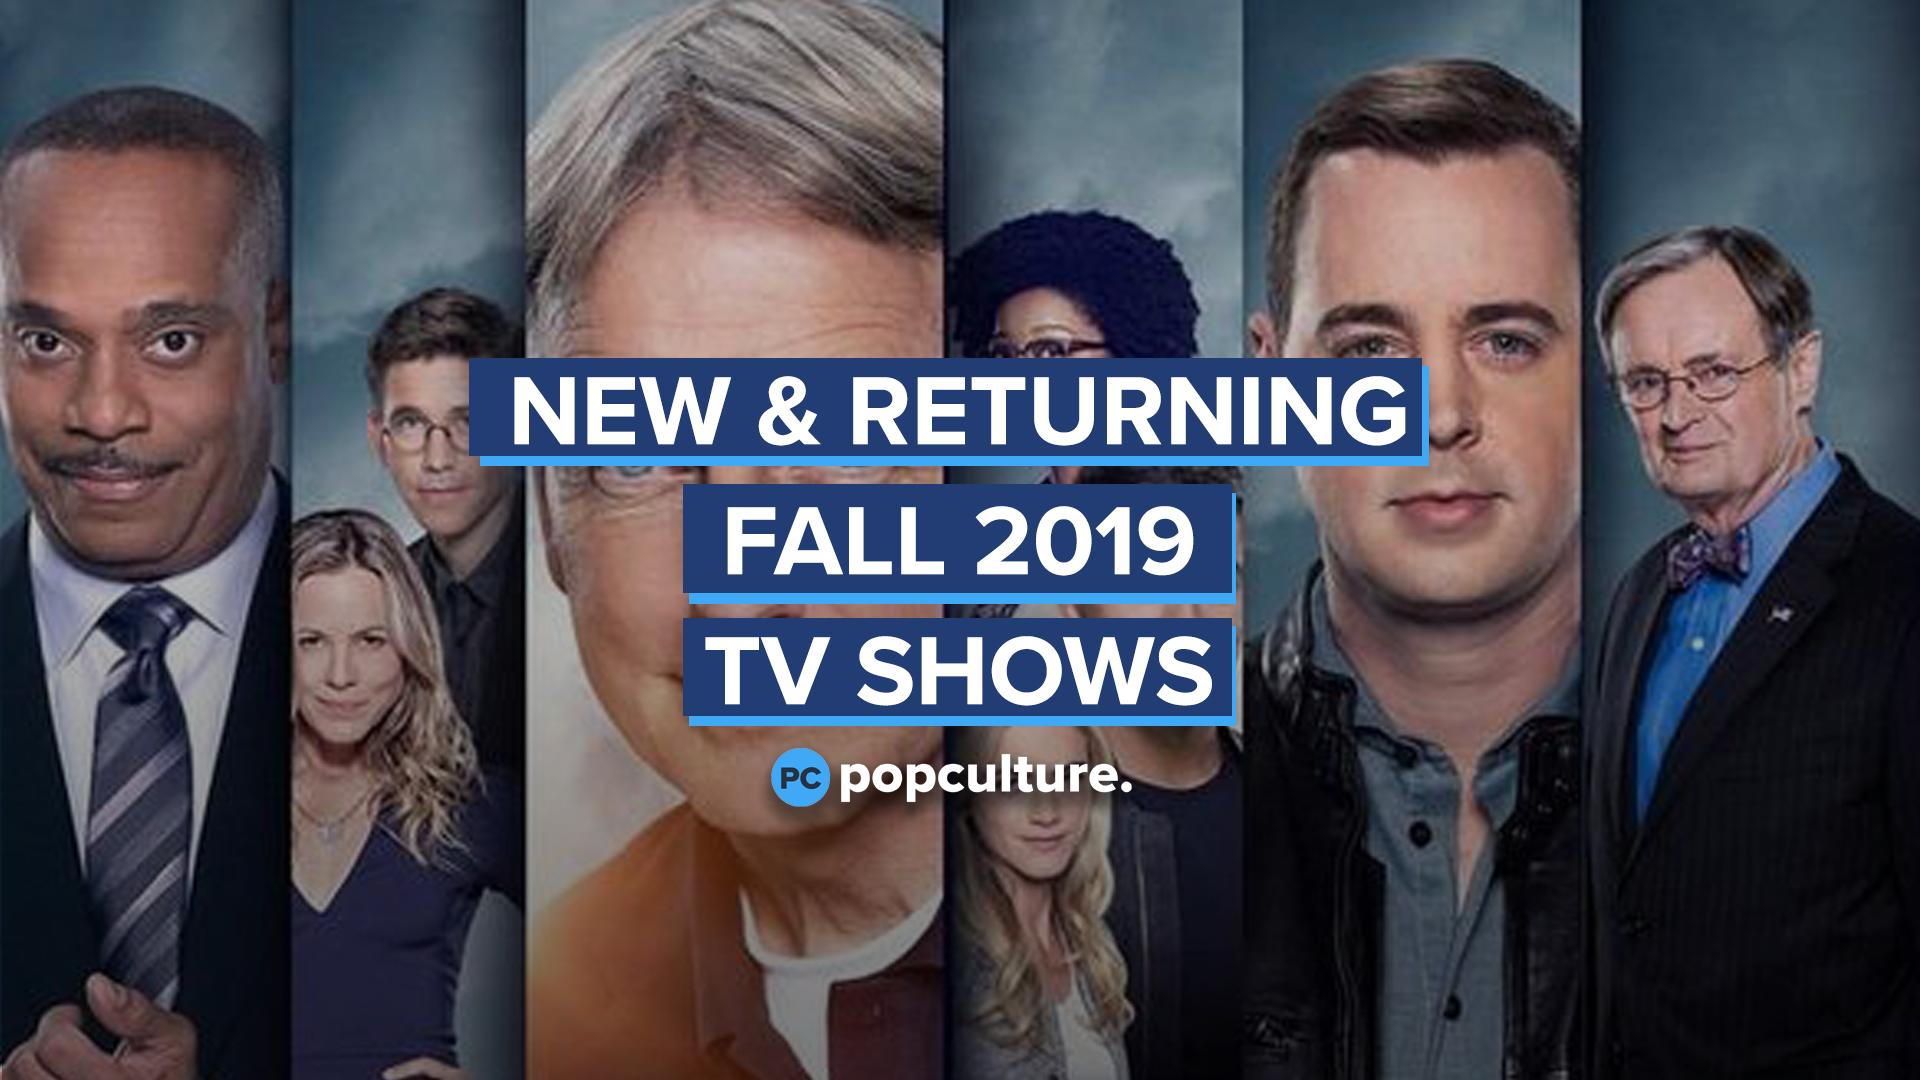 New and Returning Fall 2019 TV Shows screen capture